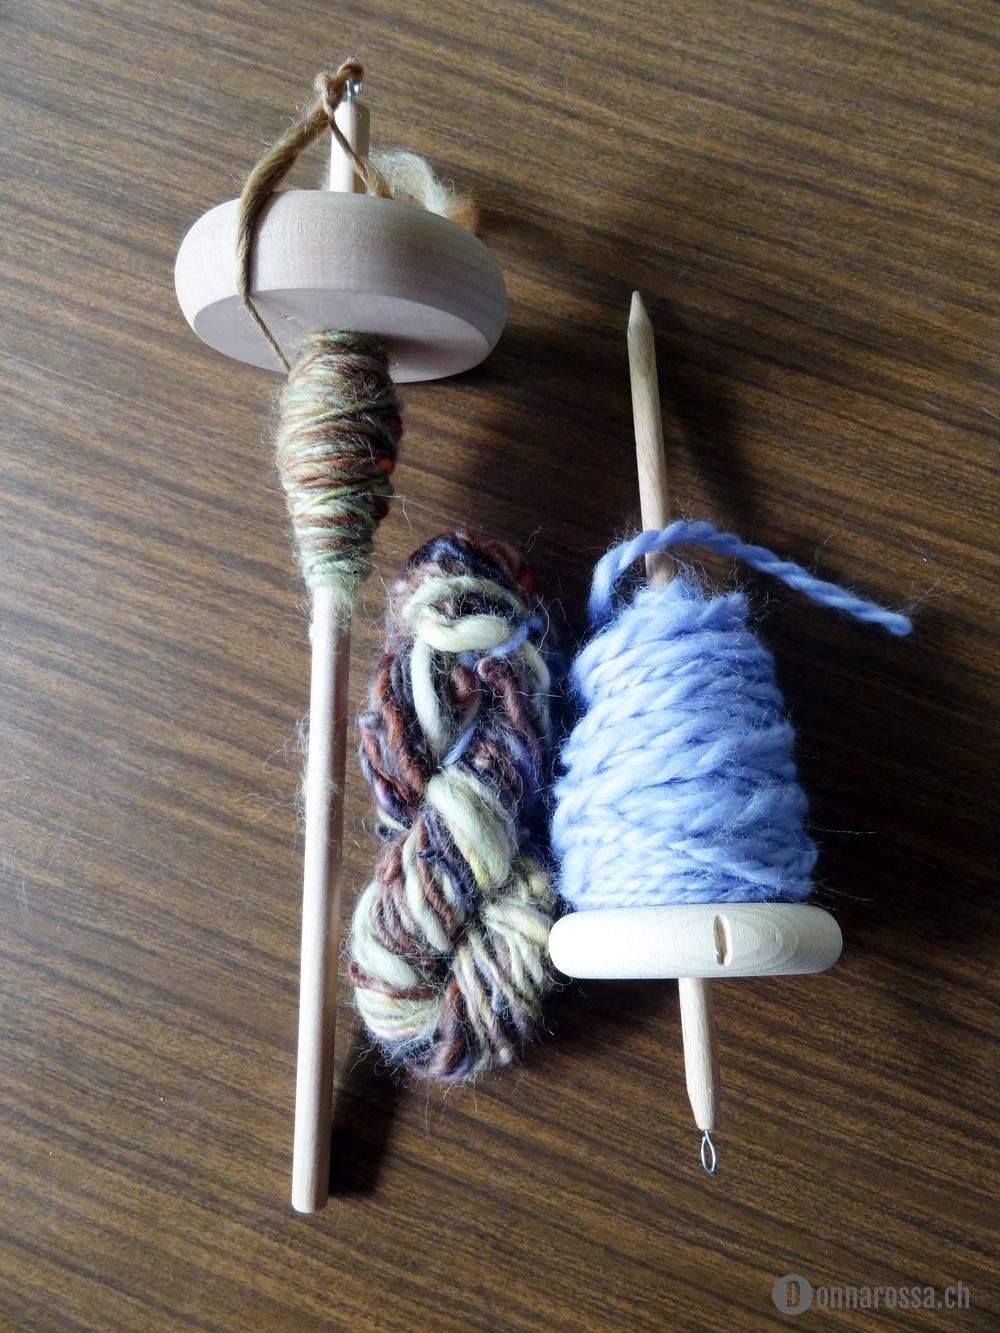 Stitching Retreat 2014 - hand spinning progress after two days